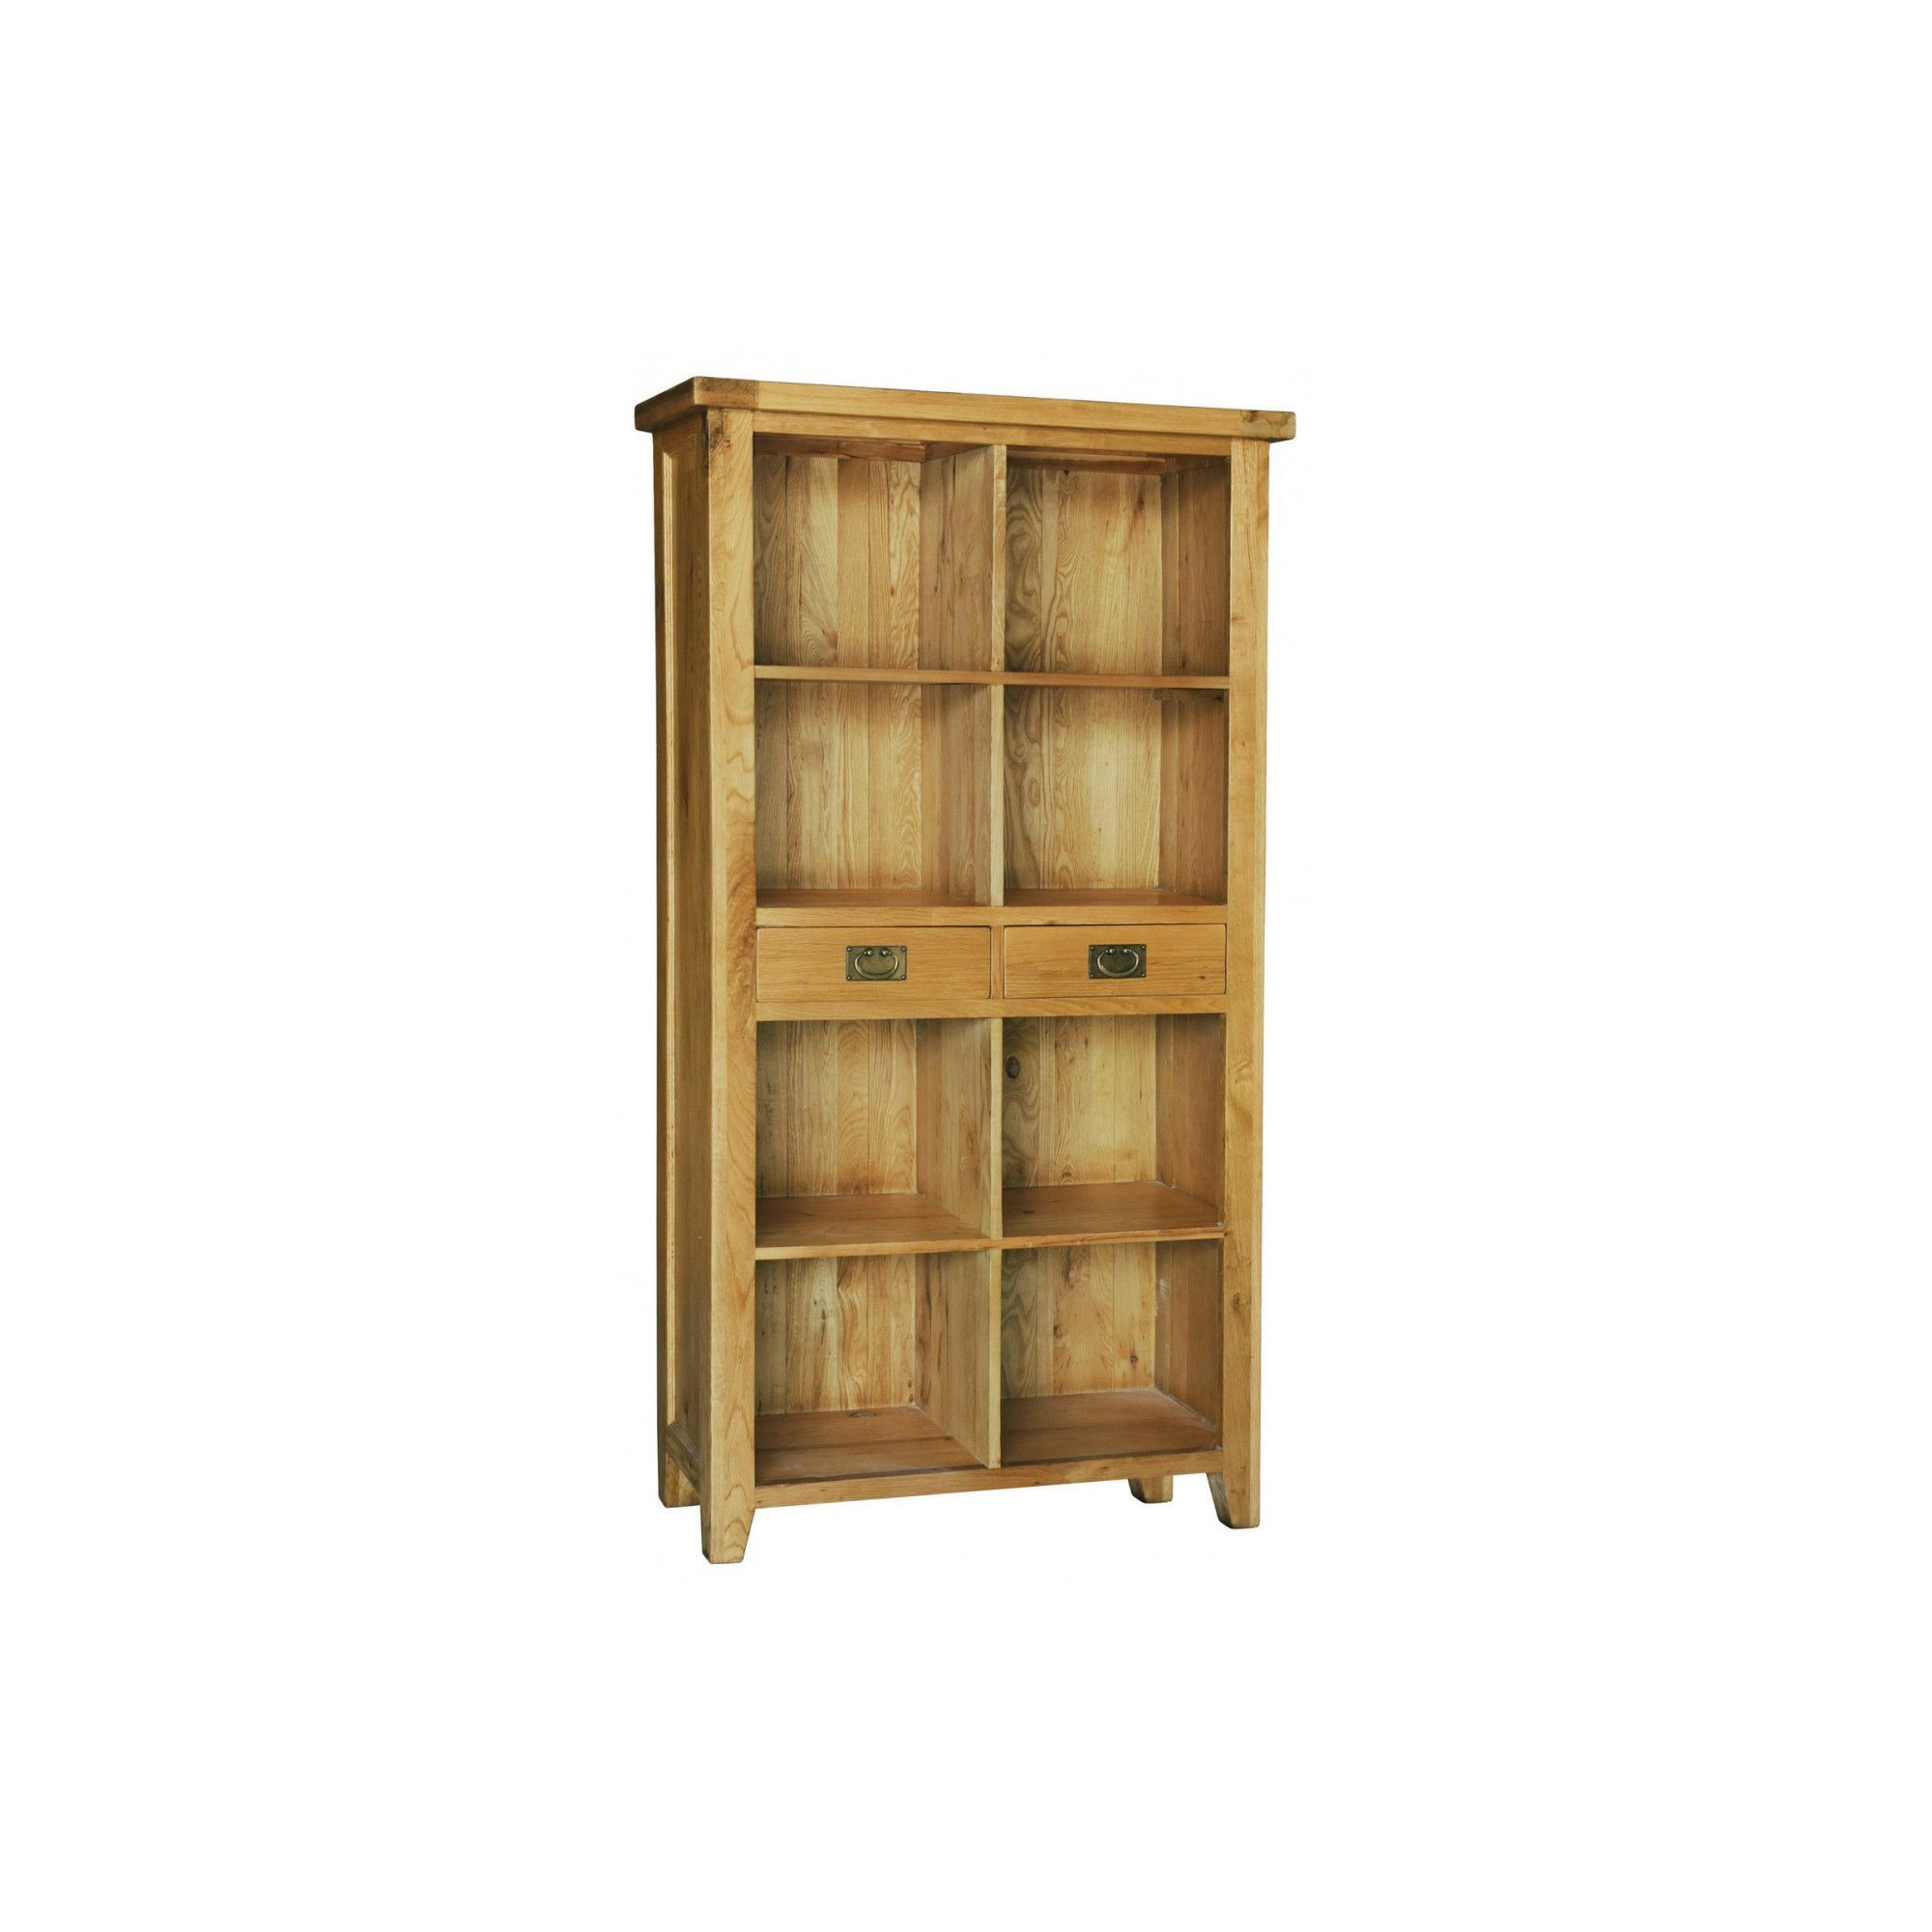 Hawkshead Calgary Bookcase with 2 Drawers at Tesco Direct